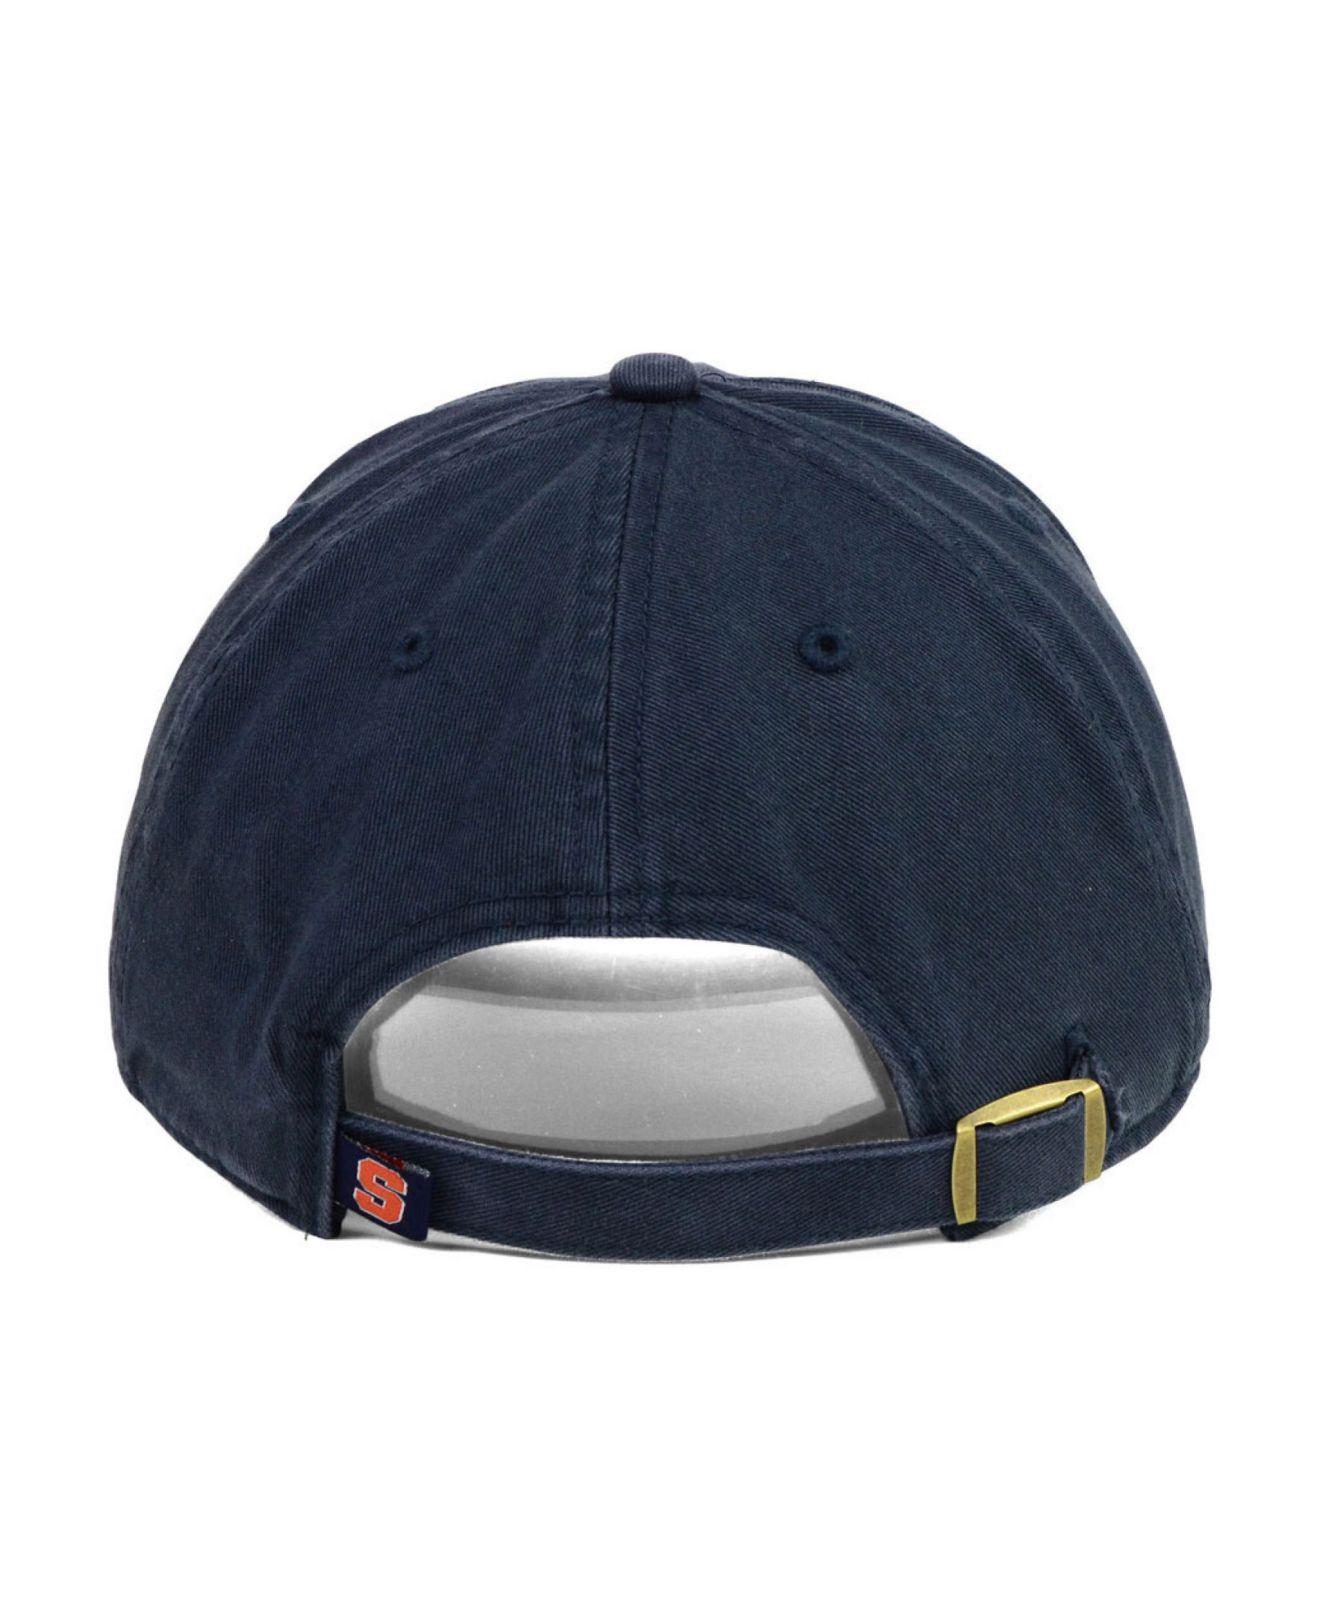 huge discount 5e7ab 1cf87 ... where can i buy lyst 47 brand syracuse orange clean up cap in blue for  men